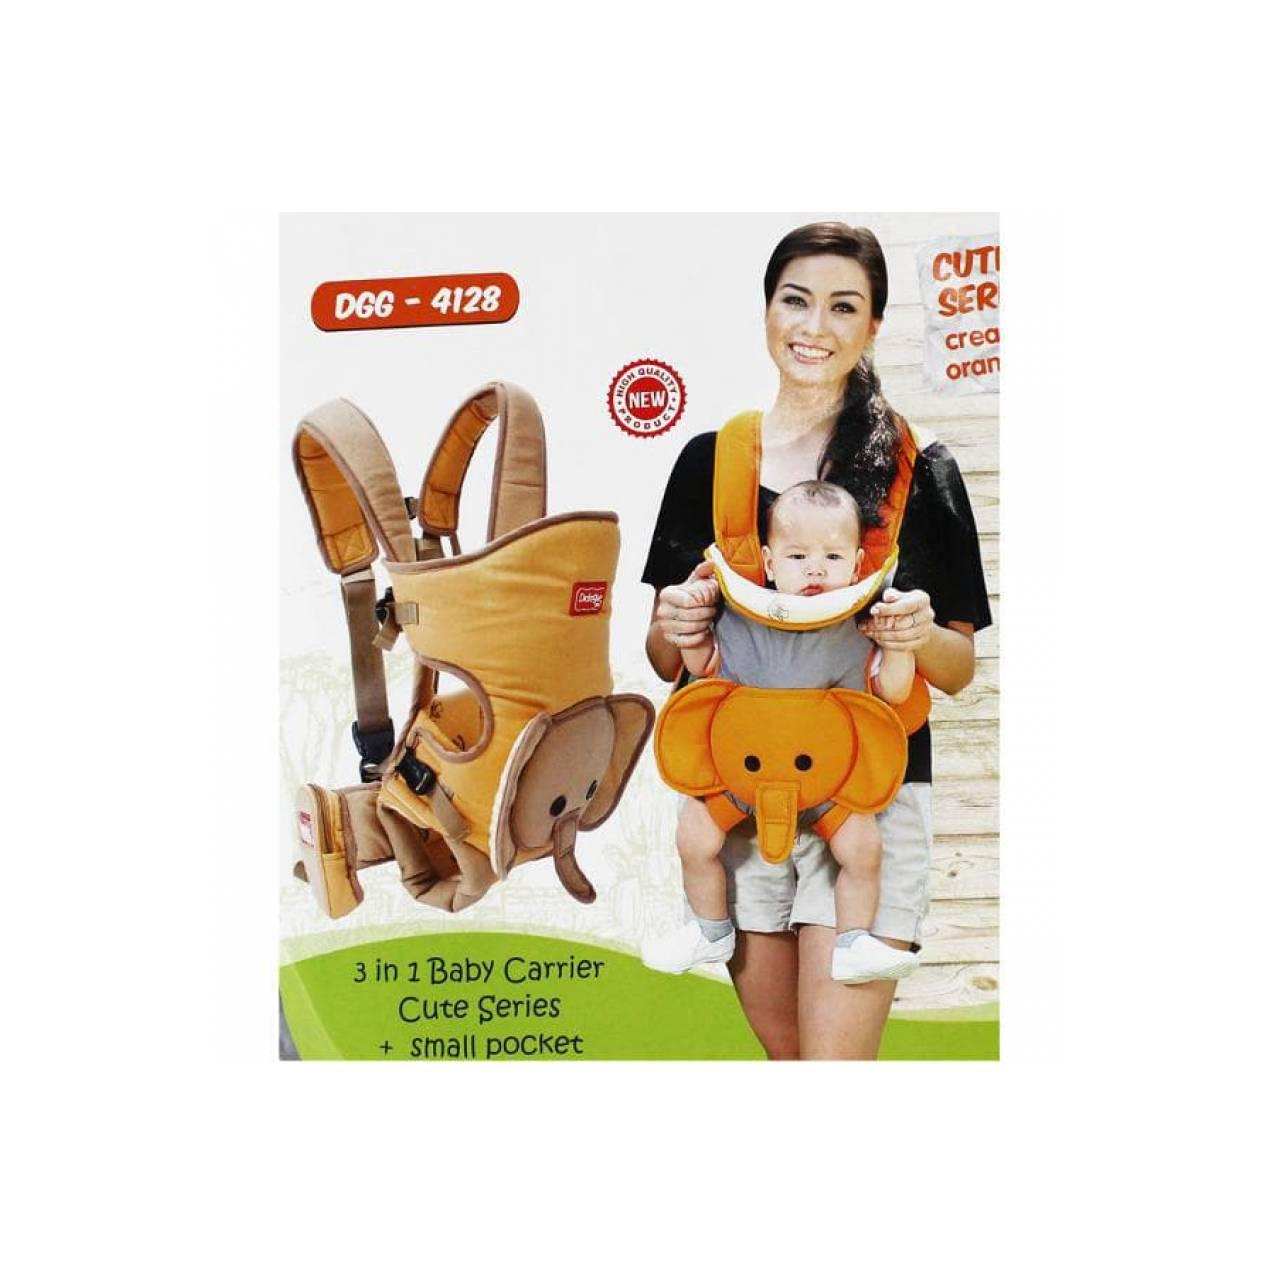 Buy Sell Cheapest Baby Carrier Dialogue Best Quality Product Deals 2 In 1 Sirkulasi Owl Series Hijau Gendongan Bayi 3 4128